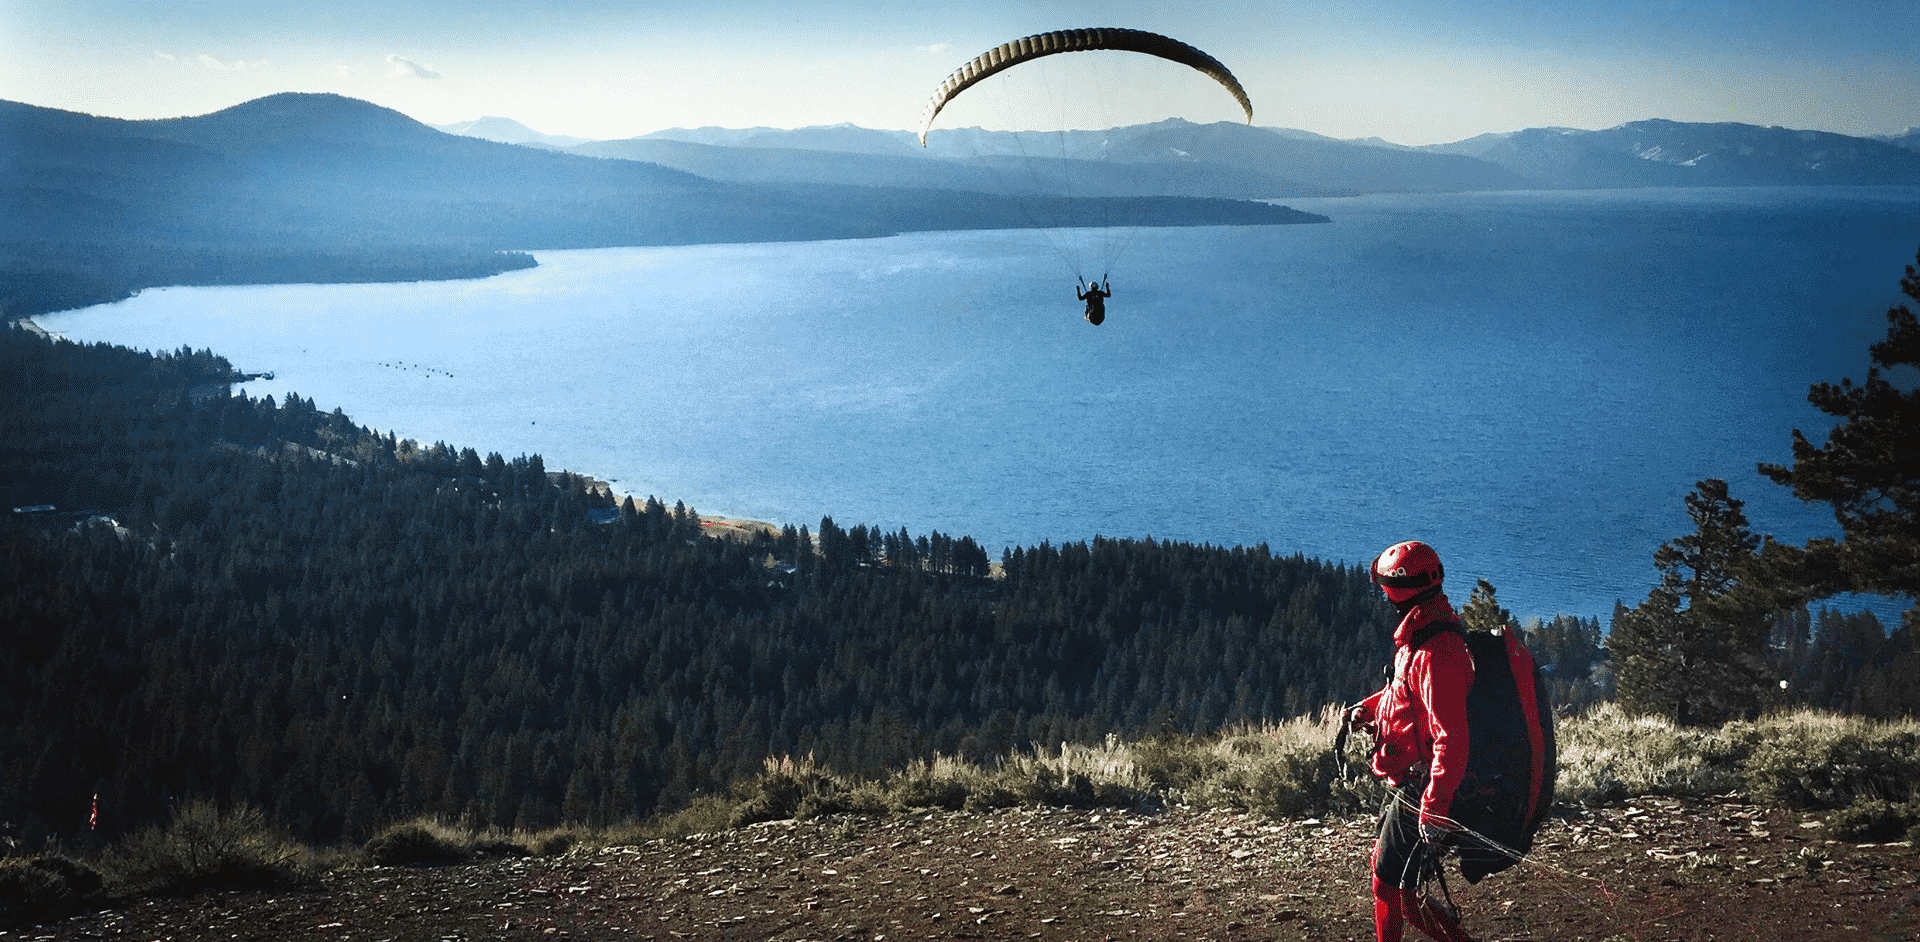 All Types tahoe pictures : Home - Lake Tahoe Paragliding